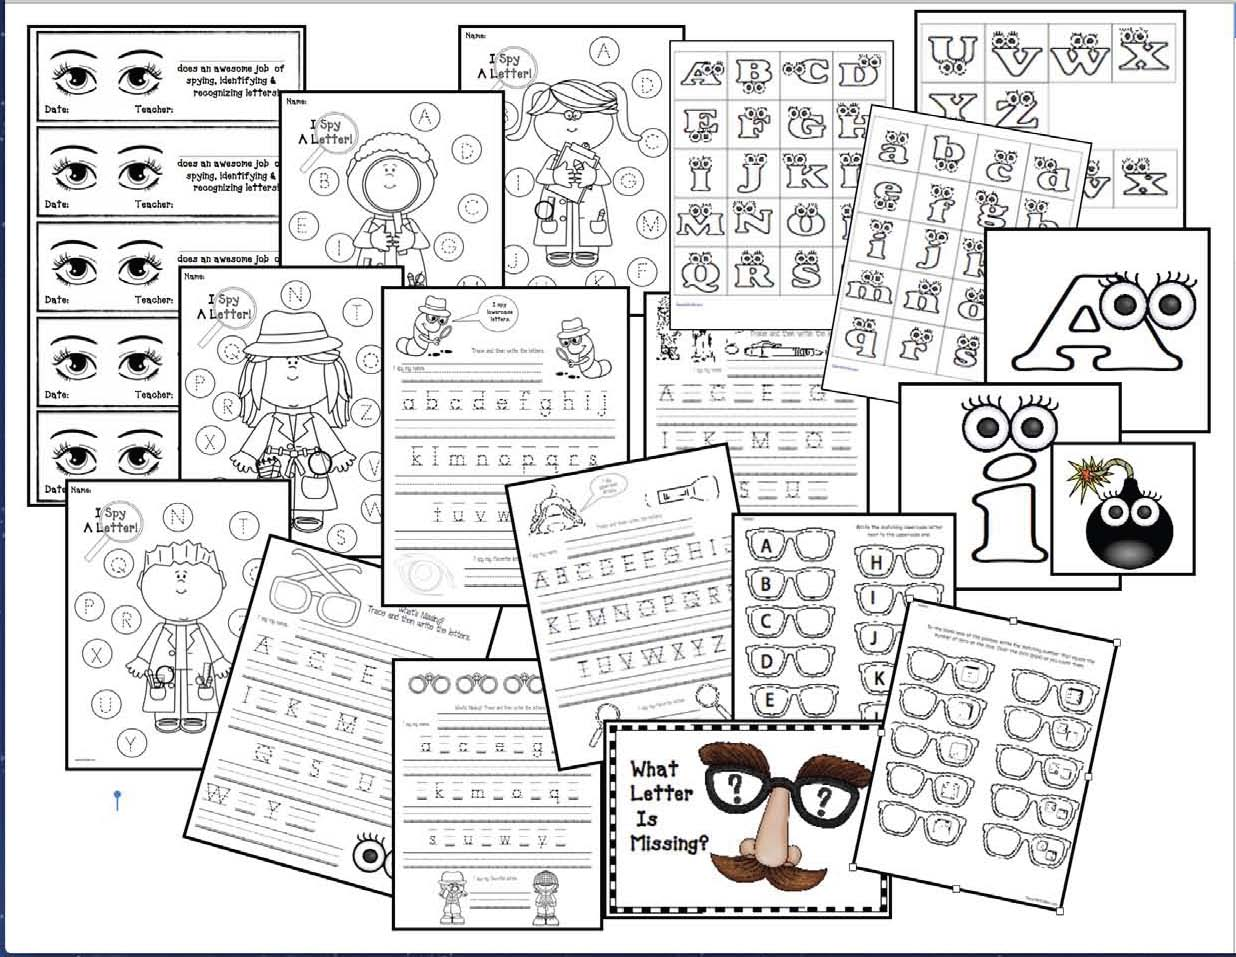 alphabet activities, alphabet games, alphabet centers, alphabet assessments, number games, number activities, number centers, math centers, back to school treats, end of the year gifts for students